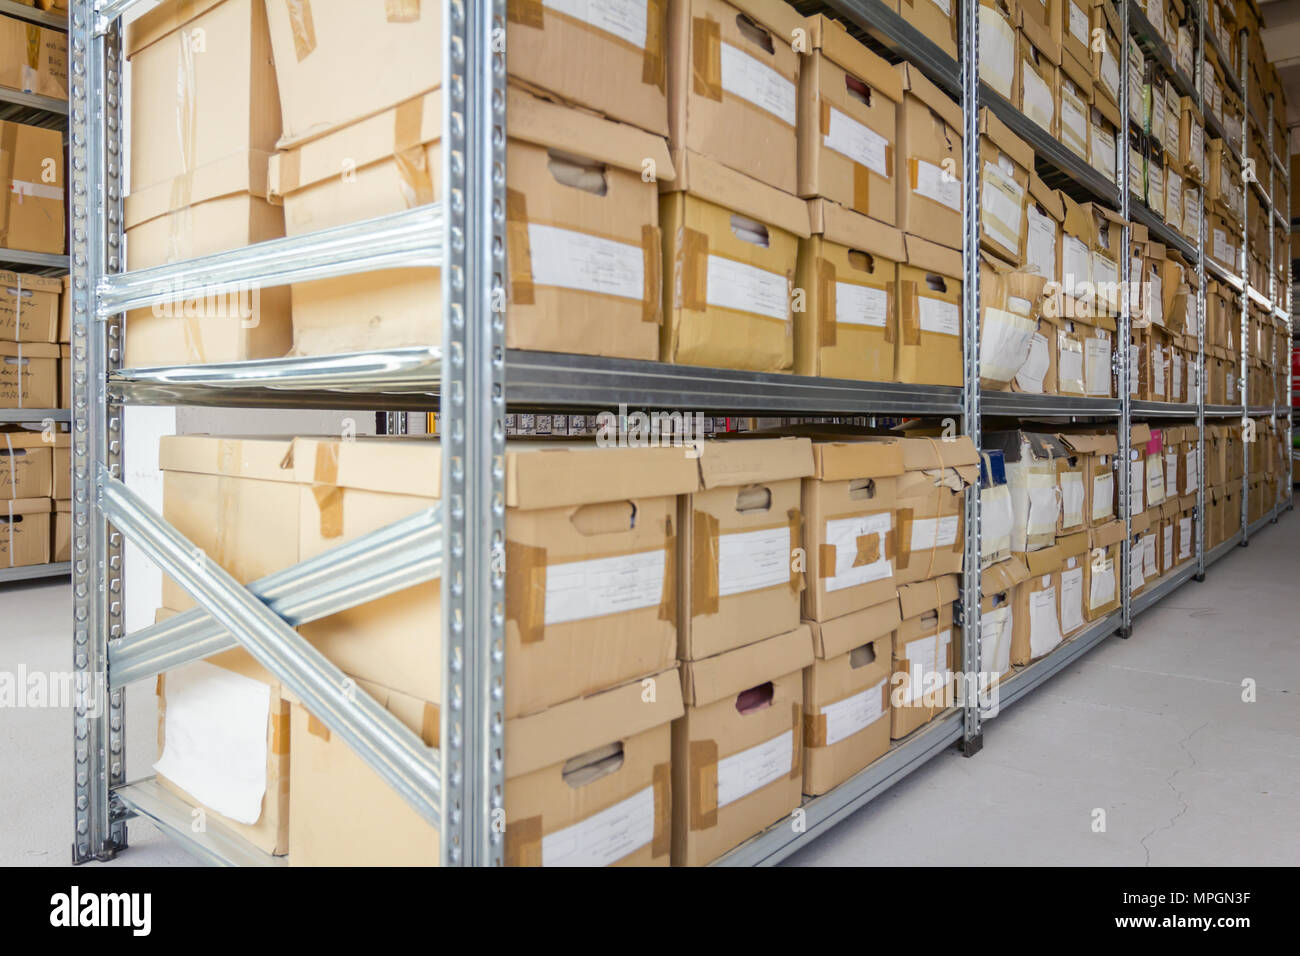 Stacks of files and paperwork placed in bookshelves with folders and documents in cardboard box archive, storage room. - Stock Image